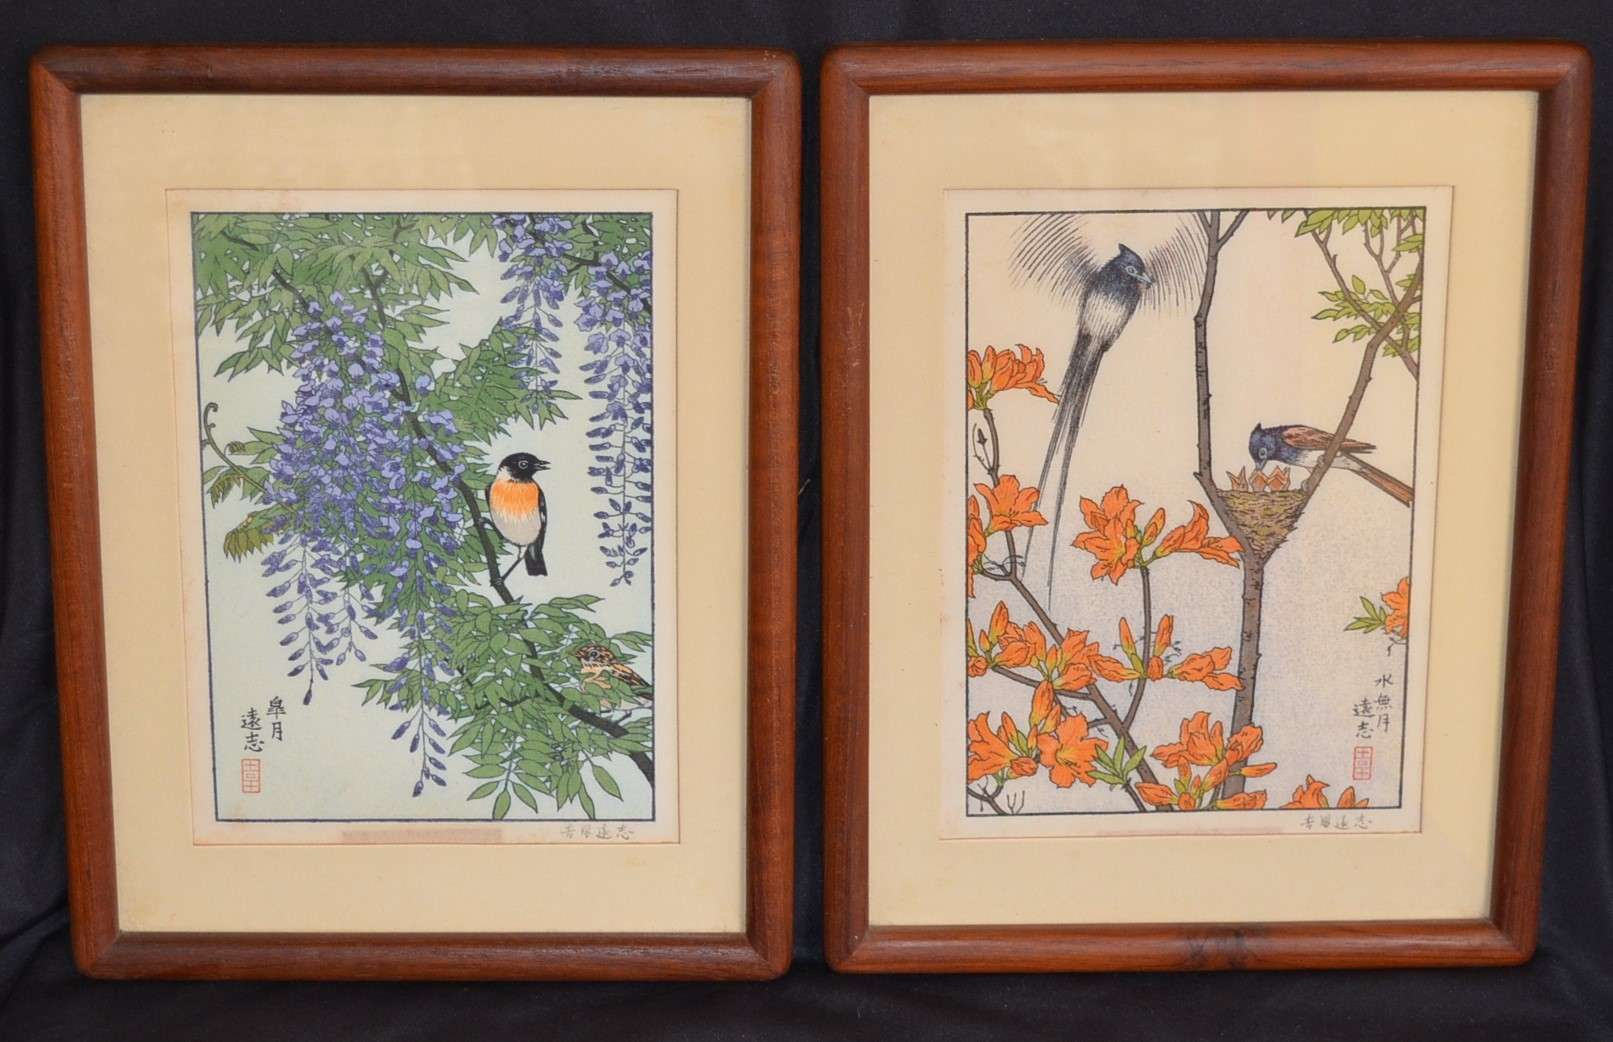 TOSHI YOSHIDA: THE FLOWERS AND BIRDS OF THE ORIENTAL YEAR - May / June